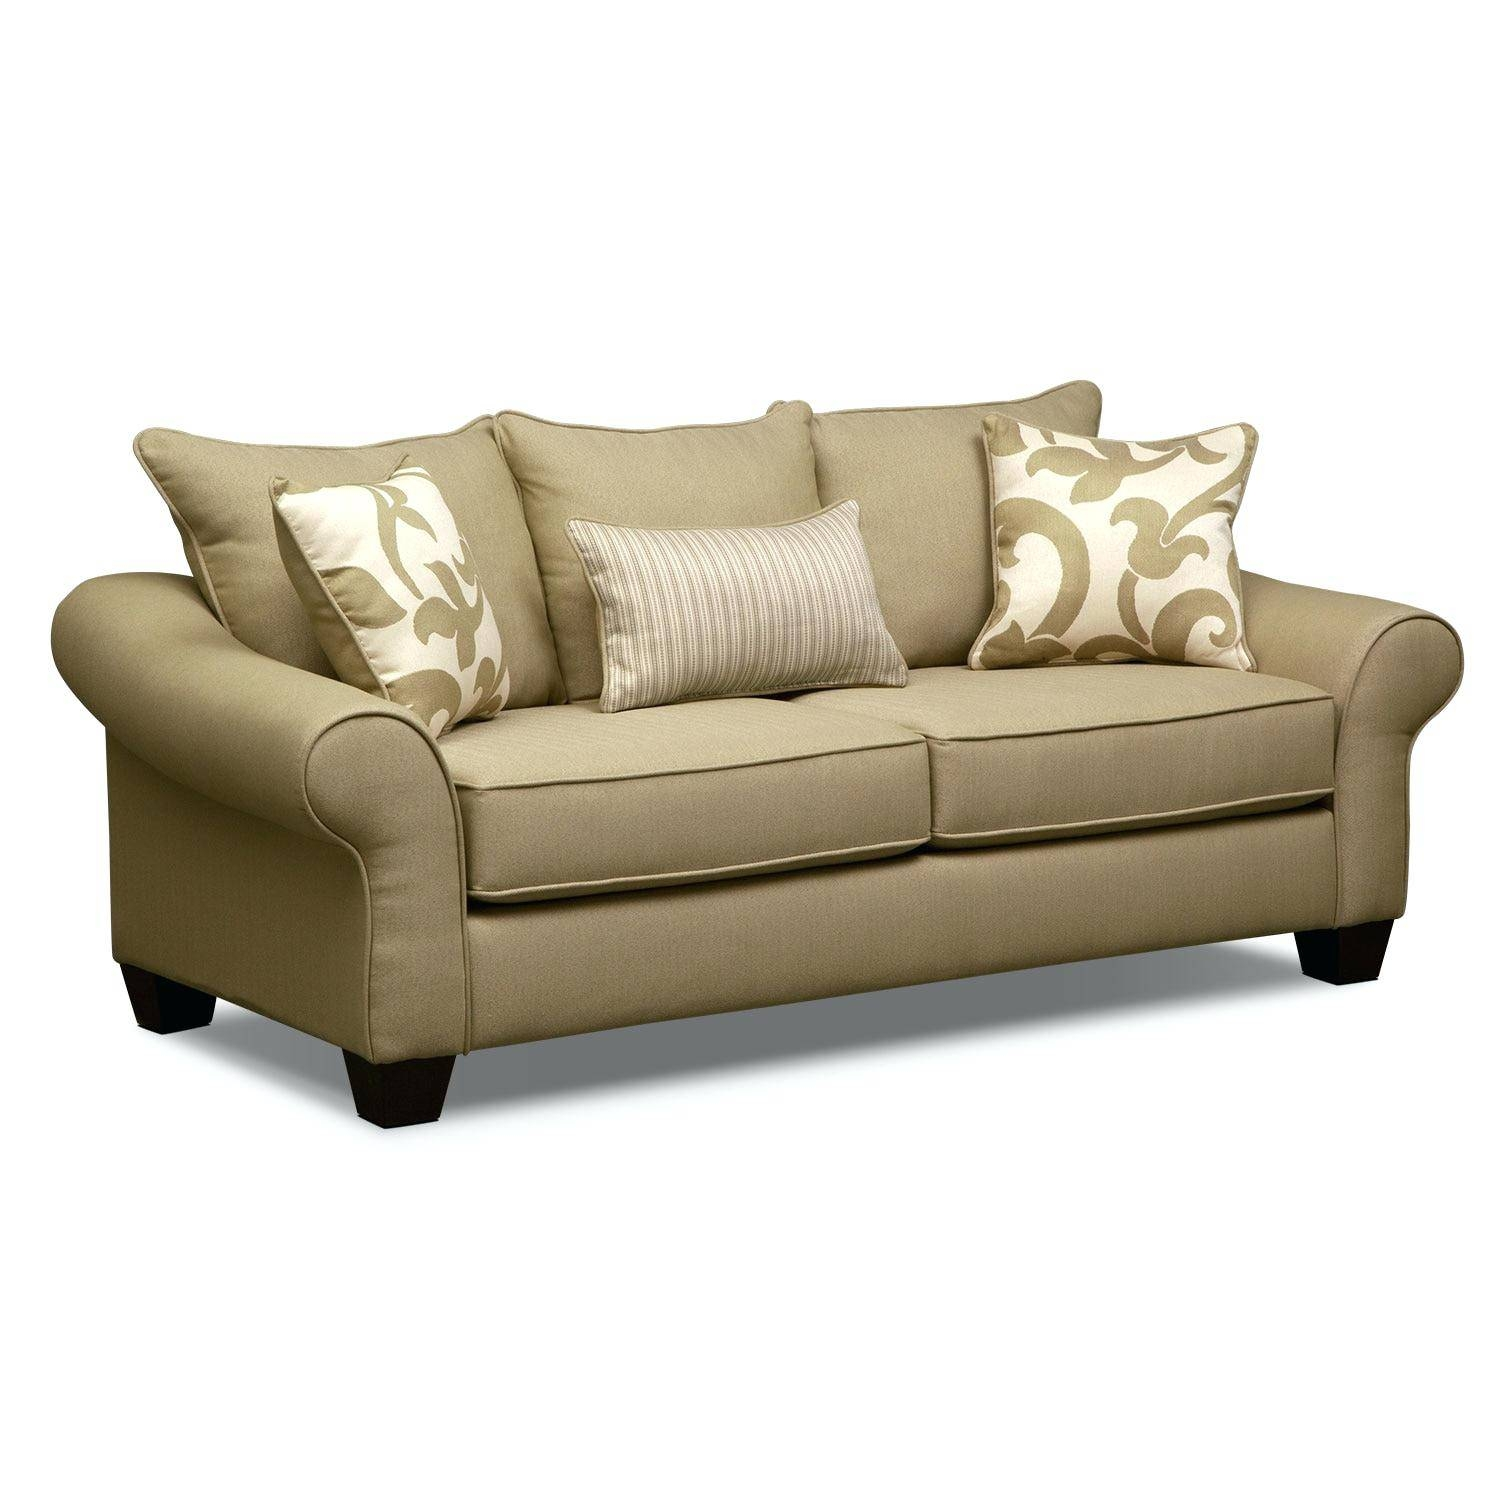 Value City Furniture Sofas – Cybellegear With Regard To Commercial Sofas (View 15 of 15)